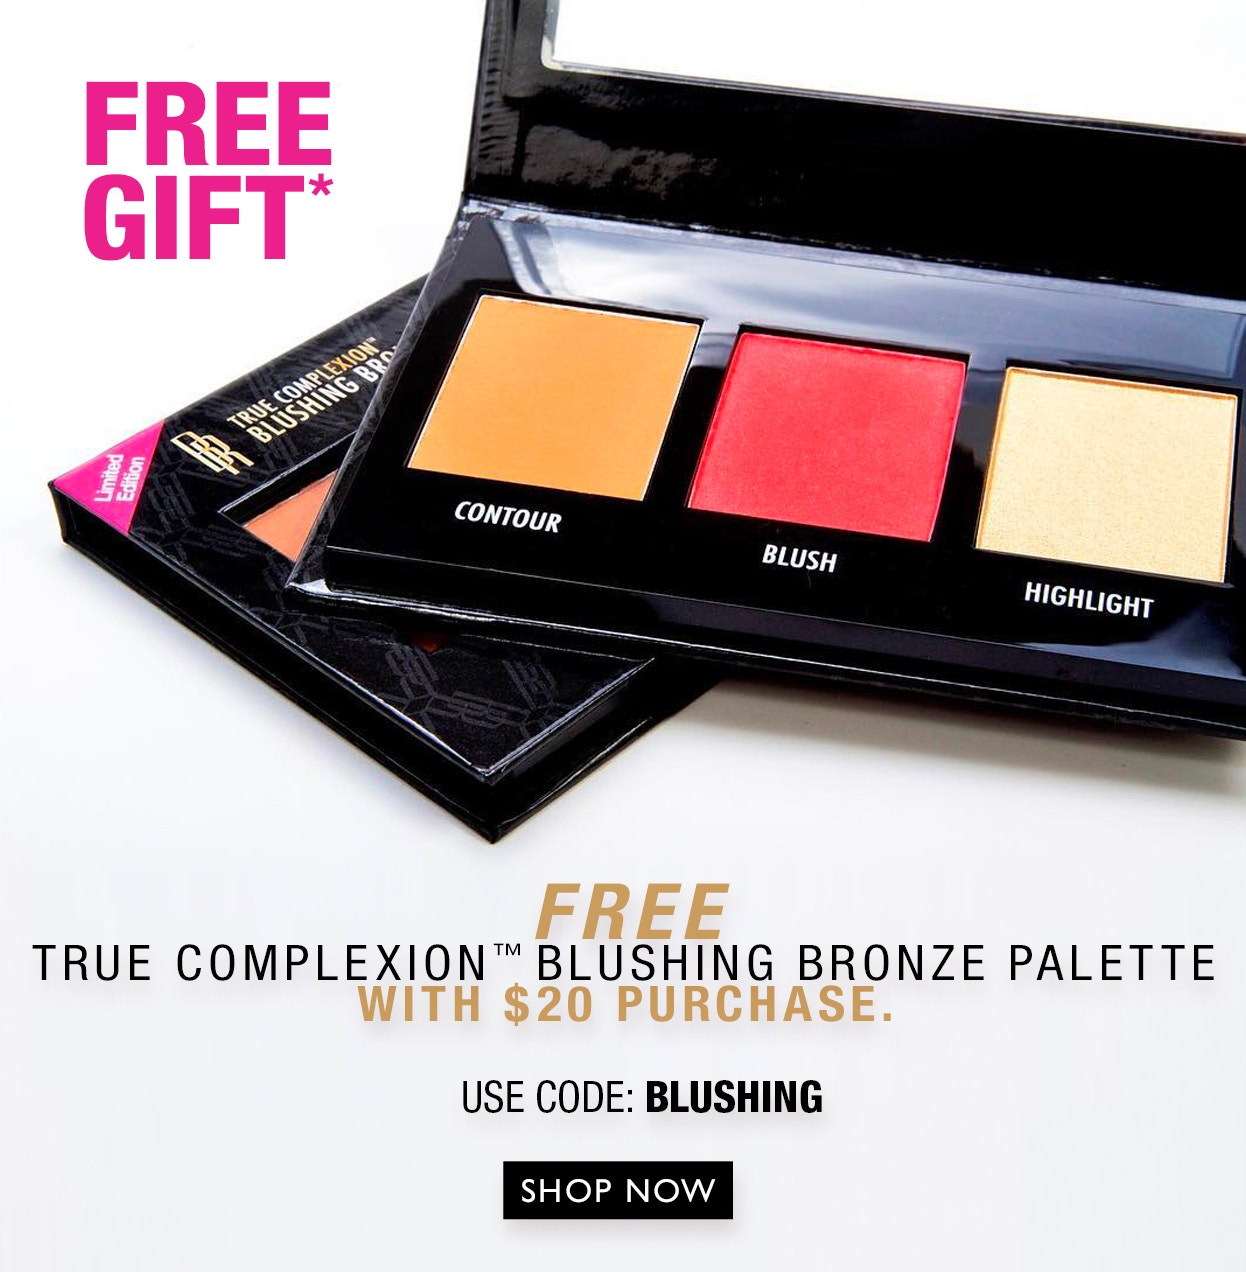 Free True Complexion Blushing Bronze Palette w/ $20 purchase | Use Code: BLUSHING | Shop Now!